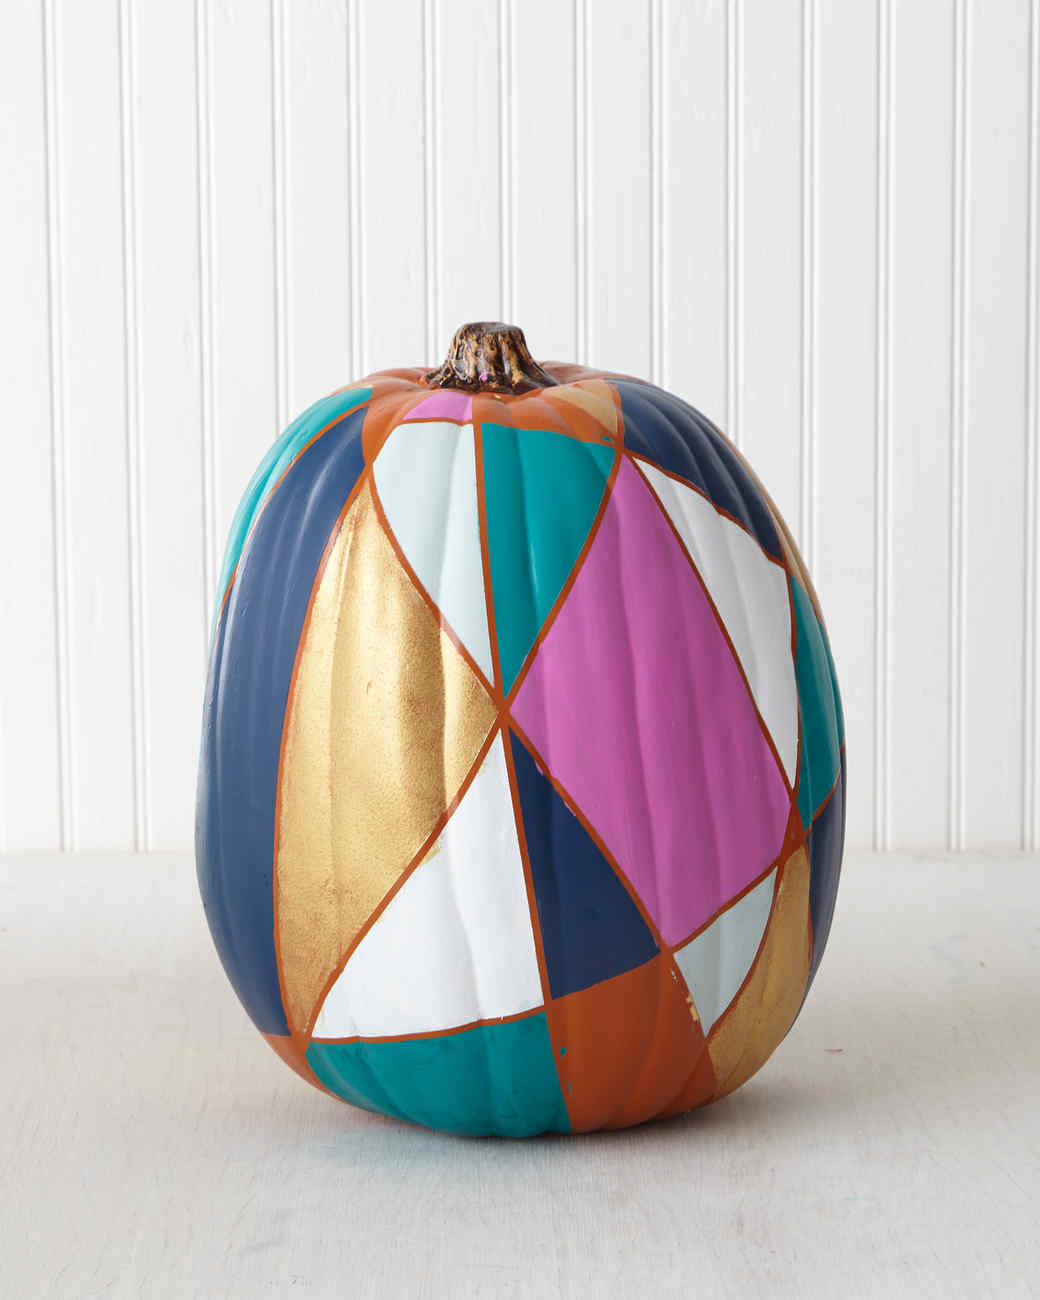 31 Days of Painted Pumpkins from the MSLO Staff